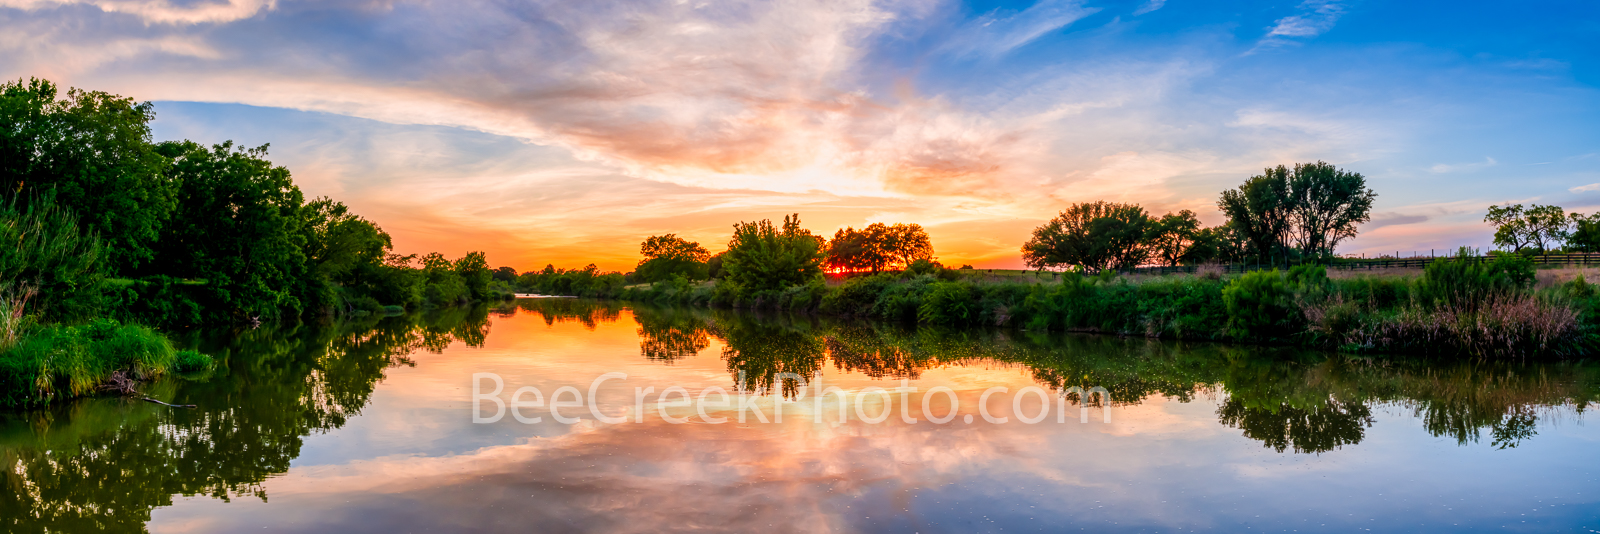 Texas Hill Country Sunset, Texas Hill country, sunset, river, landscape, panorama, pano, water, river, trees, rurals, rural texas landscape, Colorado river, pedernales river,  hill country,